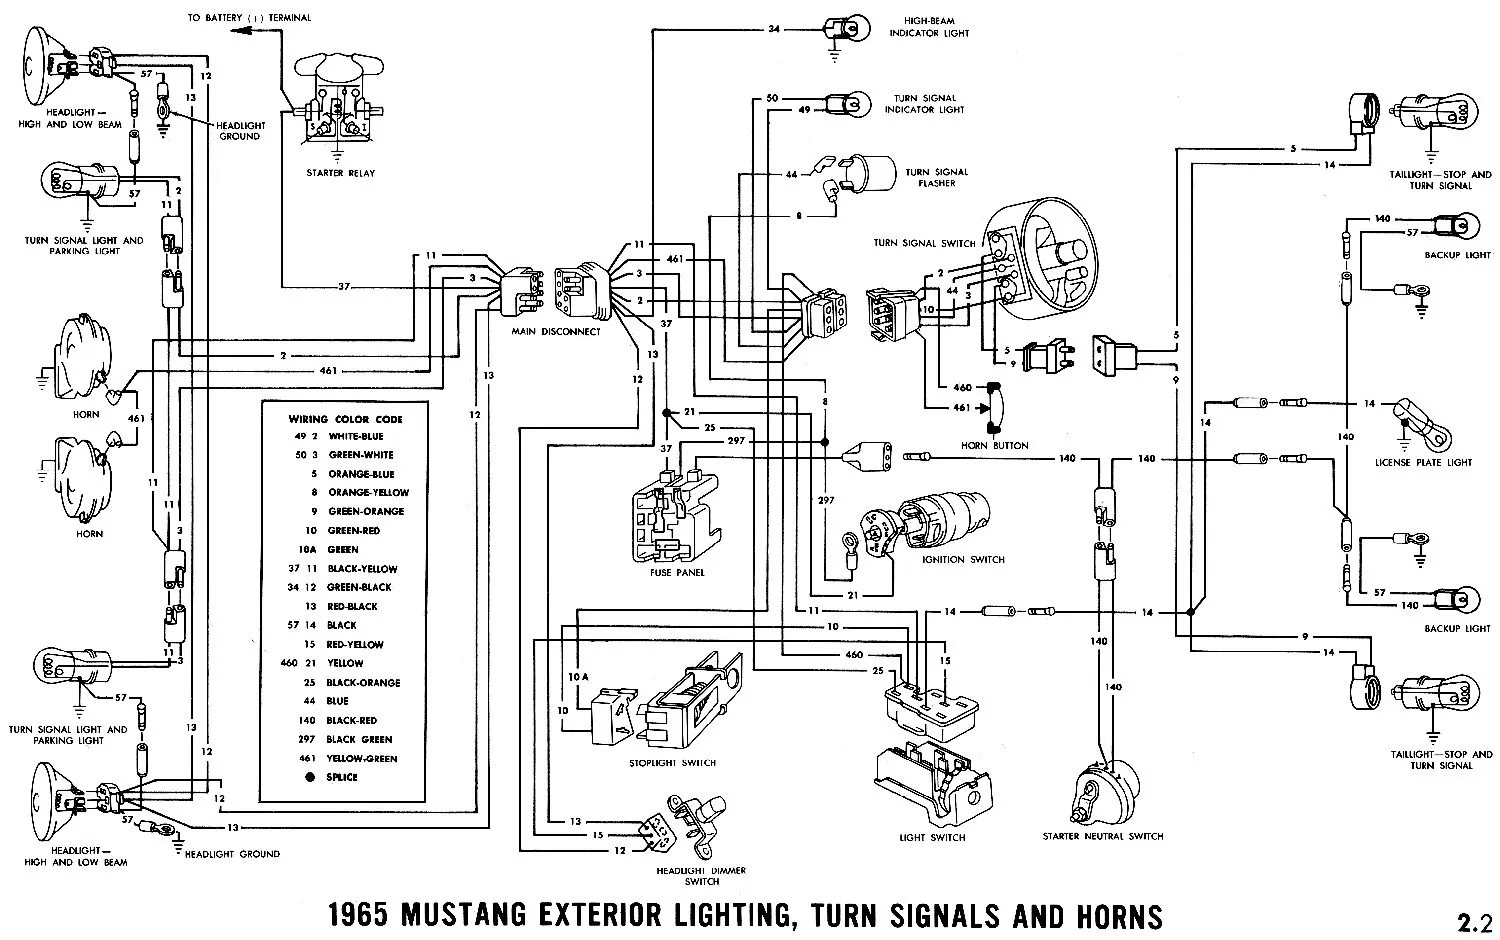 hight resolution of 1971 mustang fuse panel diagram wiring diagrams scematic 2003 mustang fuse box 1971 mustang fuse box